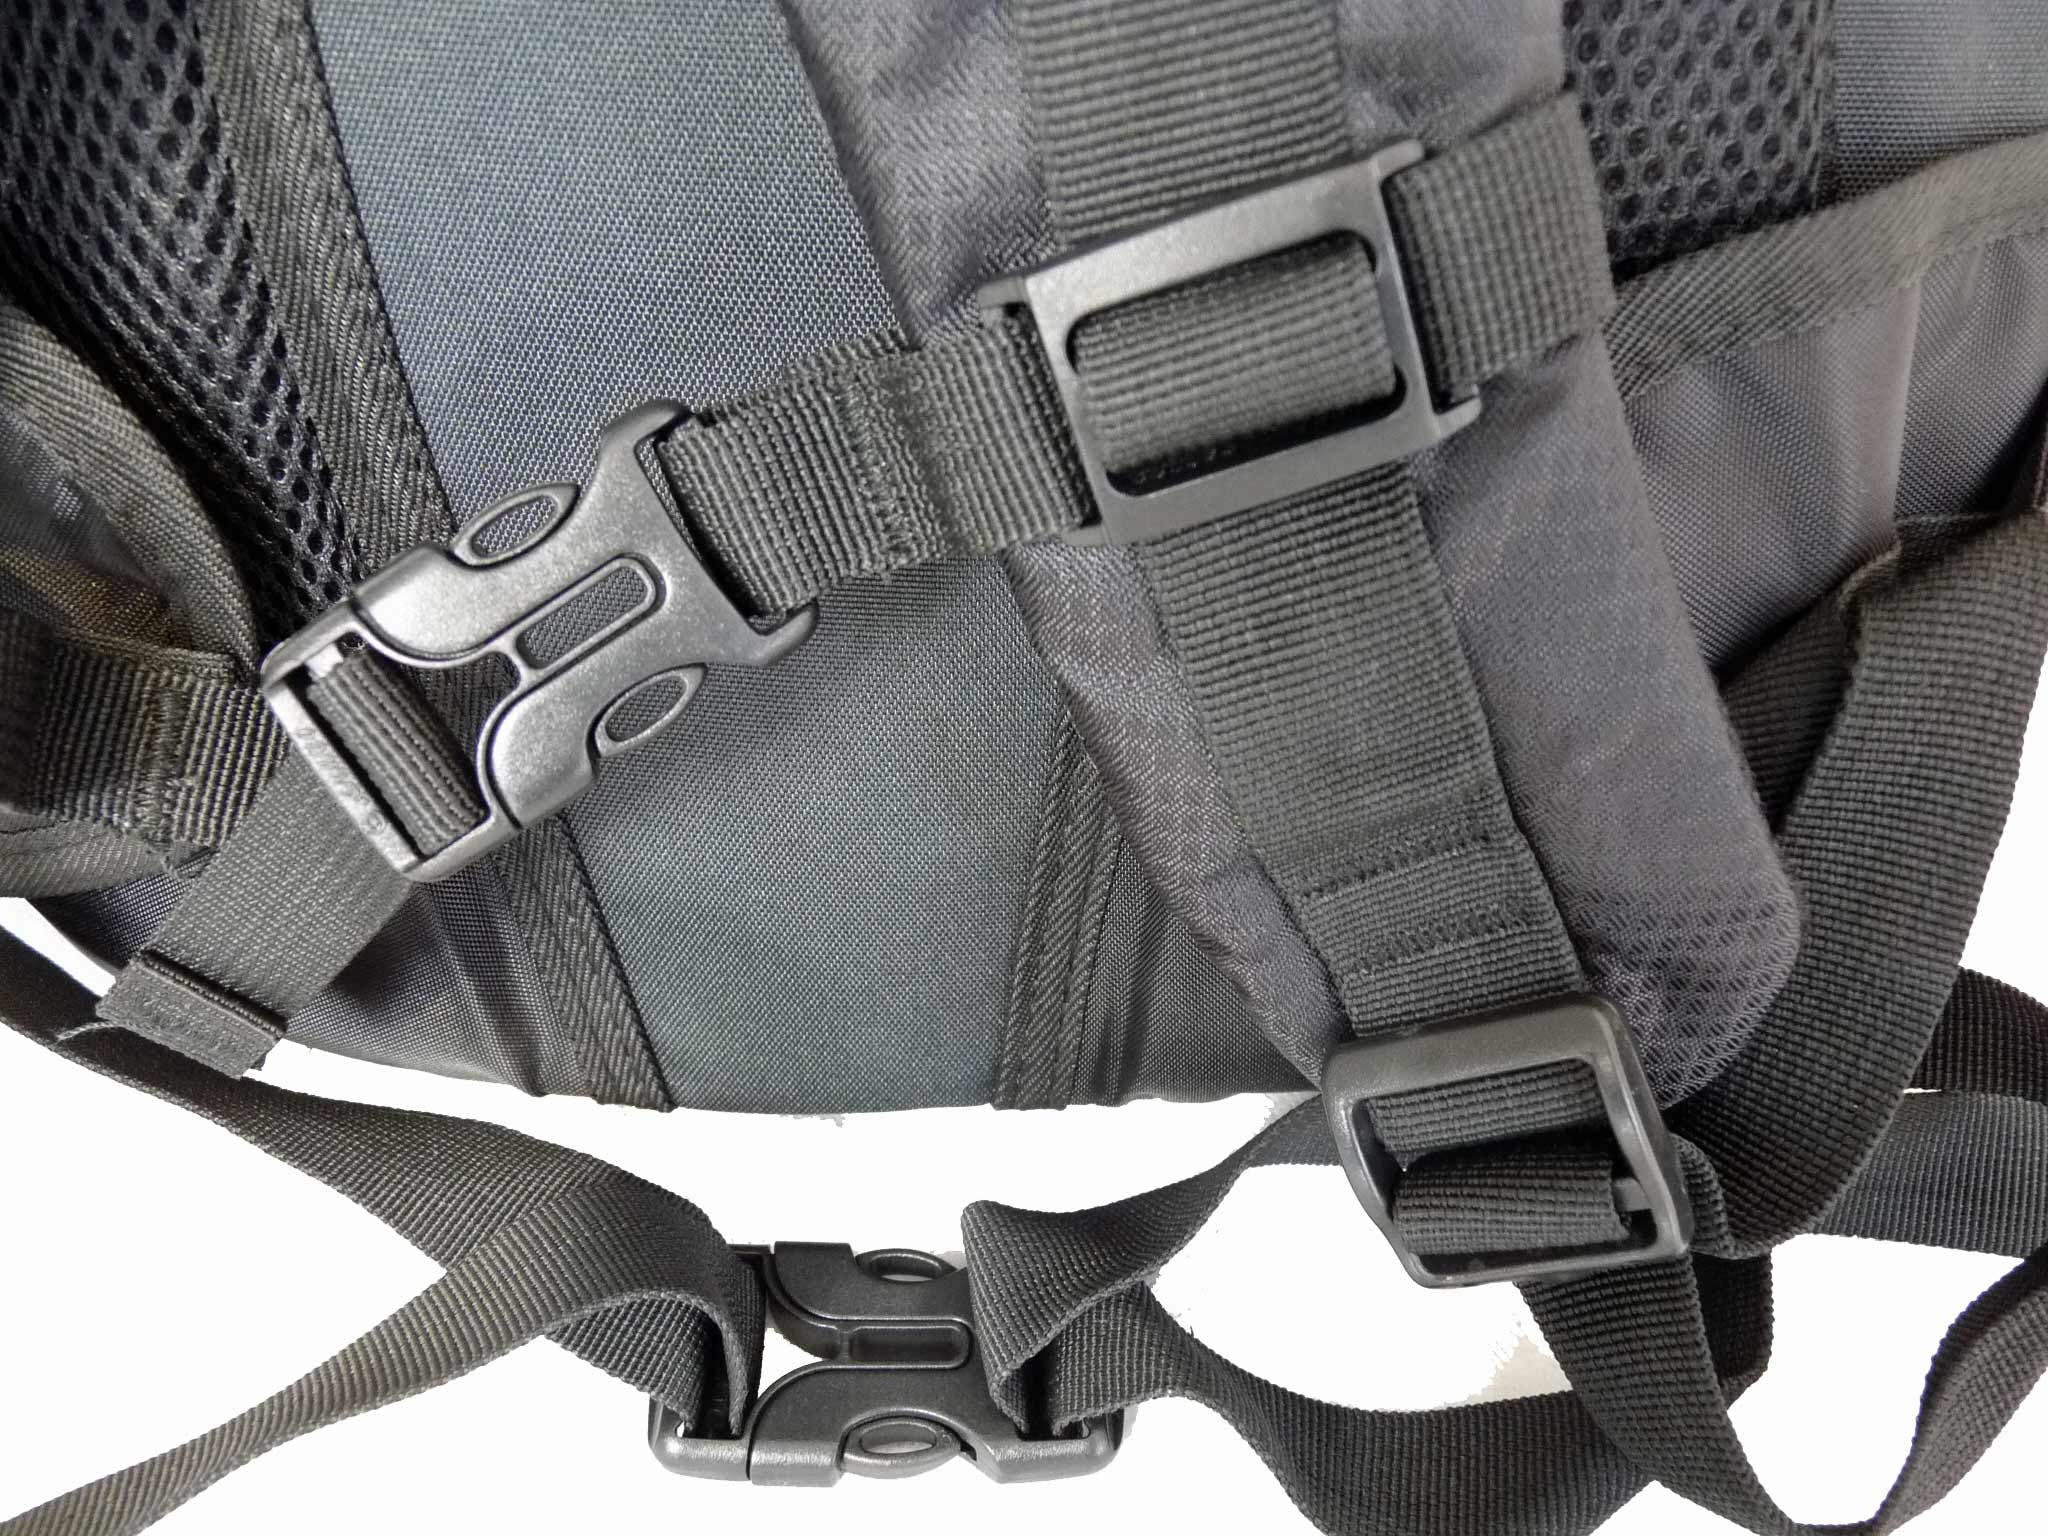 Laptop MacBook Air Backpack Rucksack Bag RL23K STRAPS VIEW